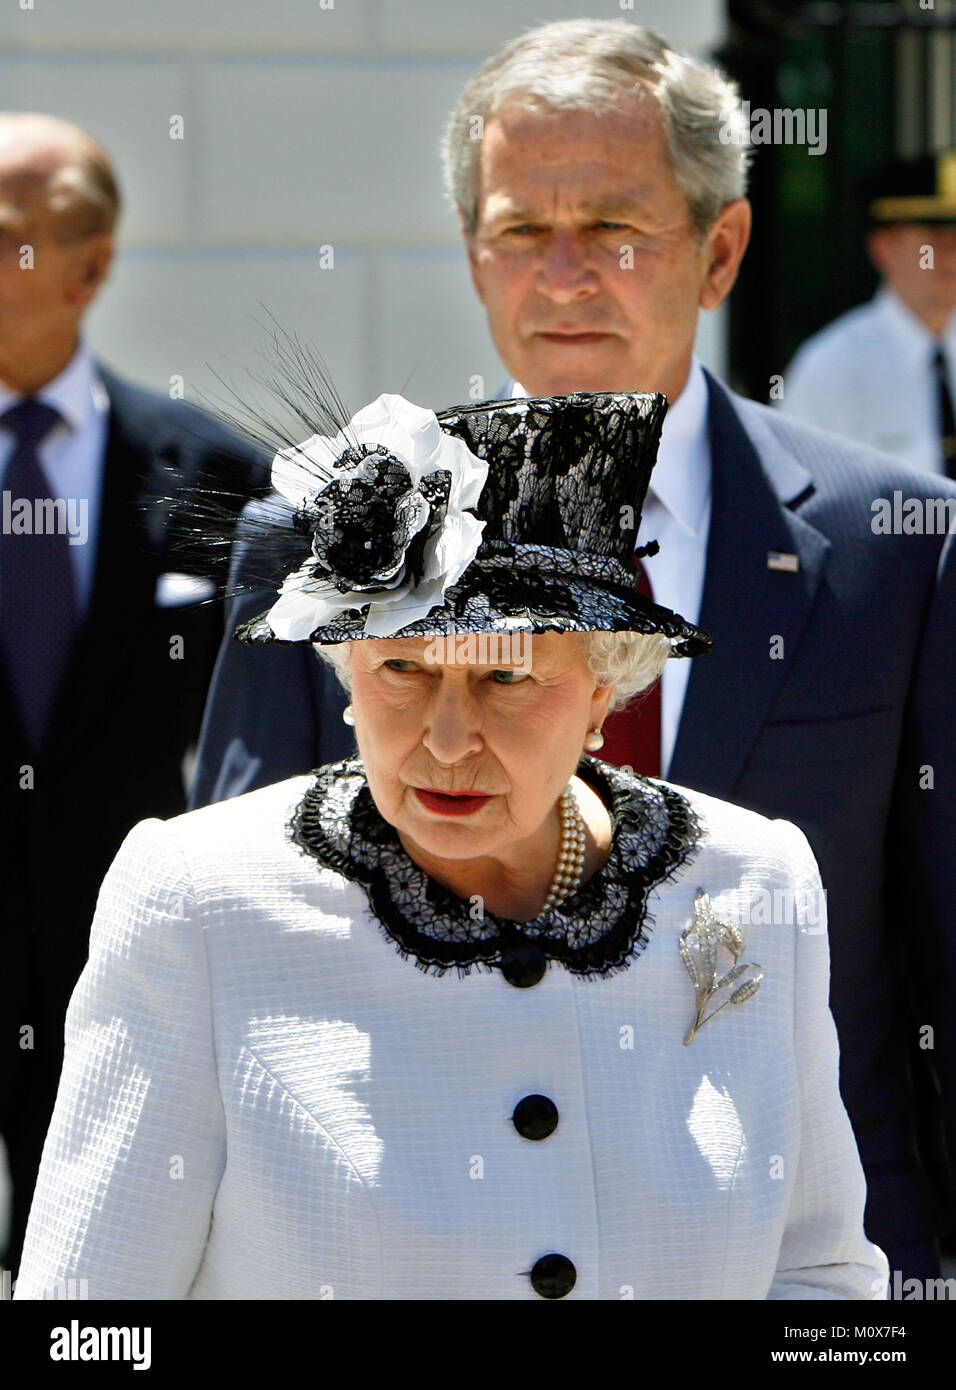 WASHINGTON - MAY 07:  (AFP OUT)  US President George W. Bush (background) and Her Majesty Queen Elizabeth II walk - Stock Image